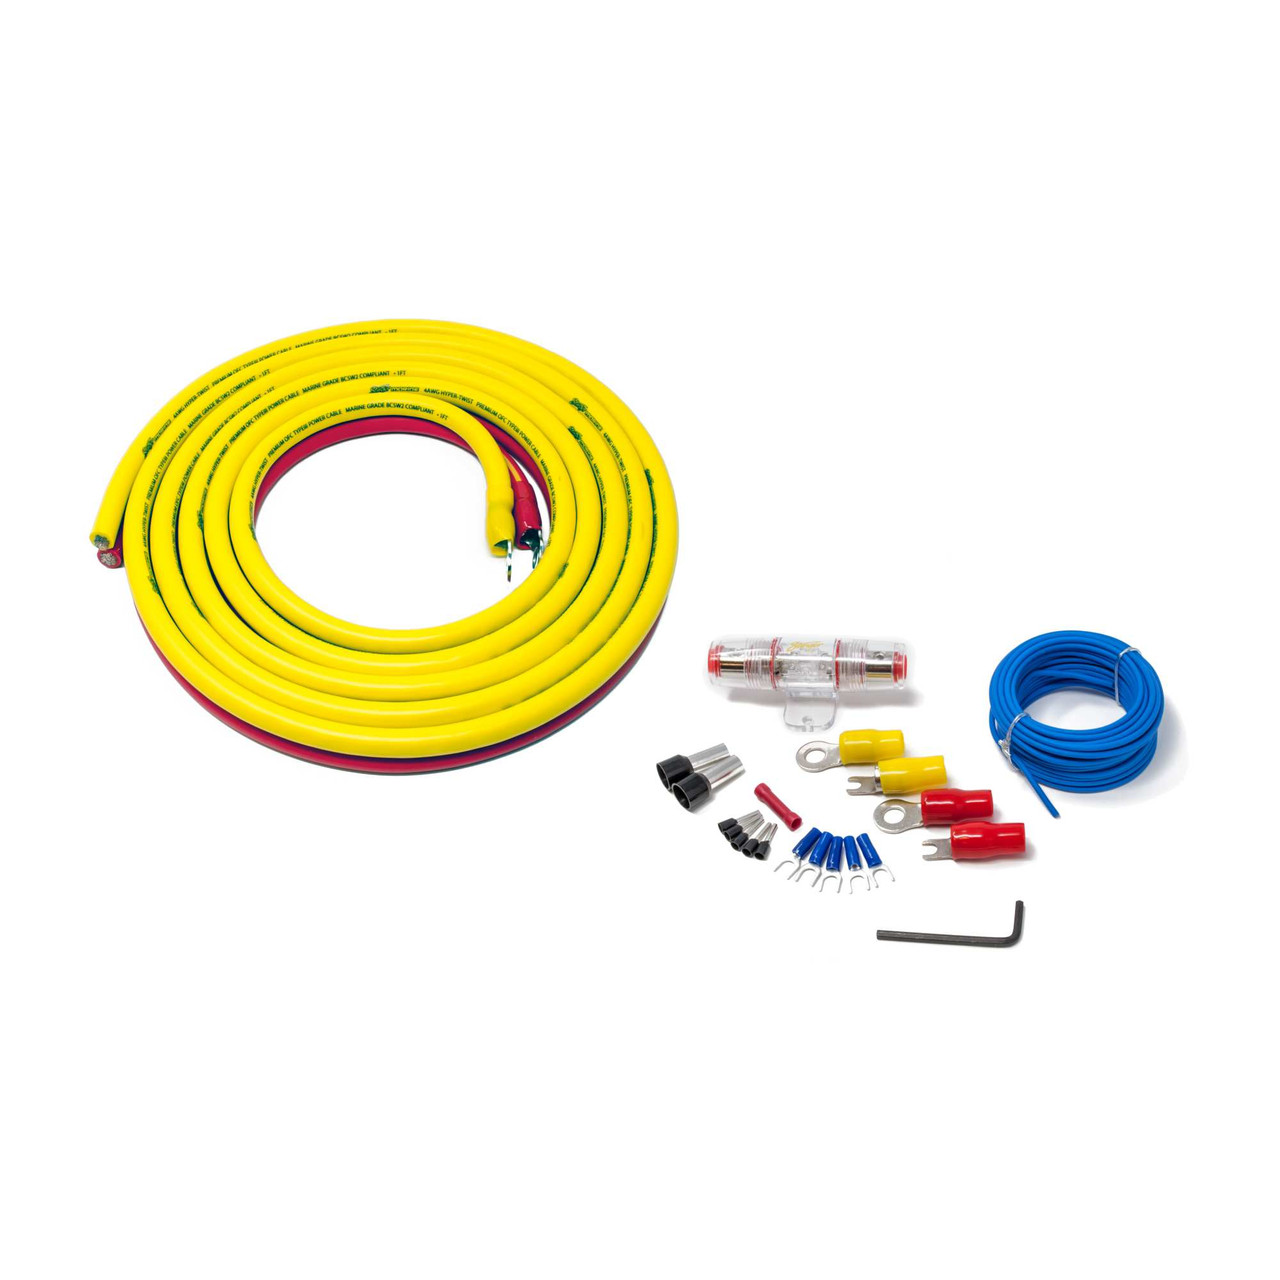 Stinger Sea4243 Marine Complete Amplifier Installation Kit 3 Meters